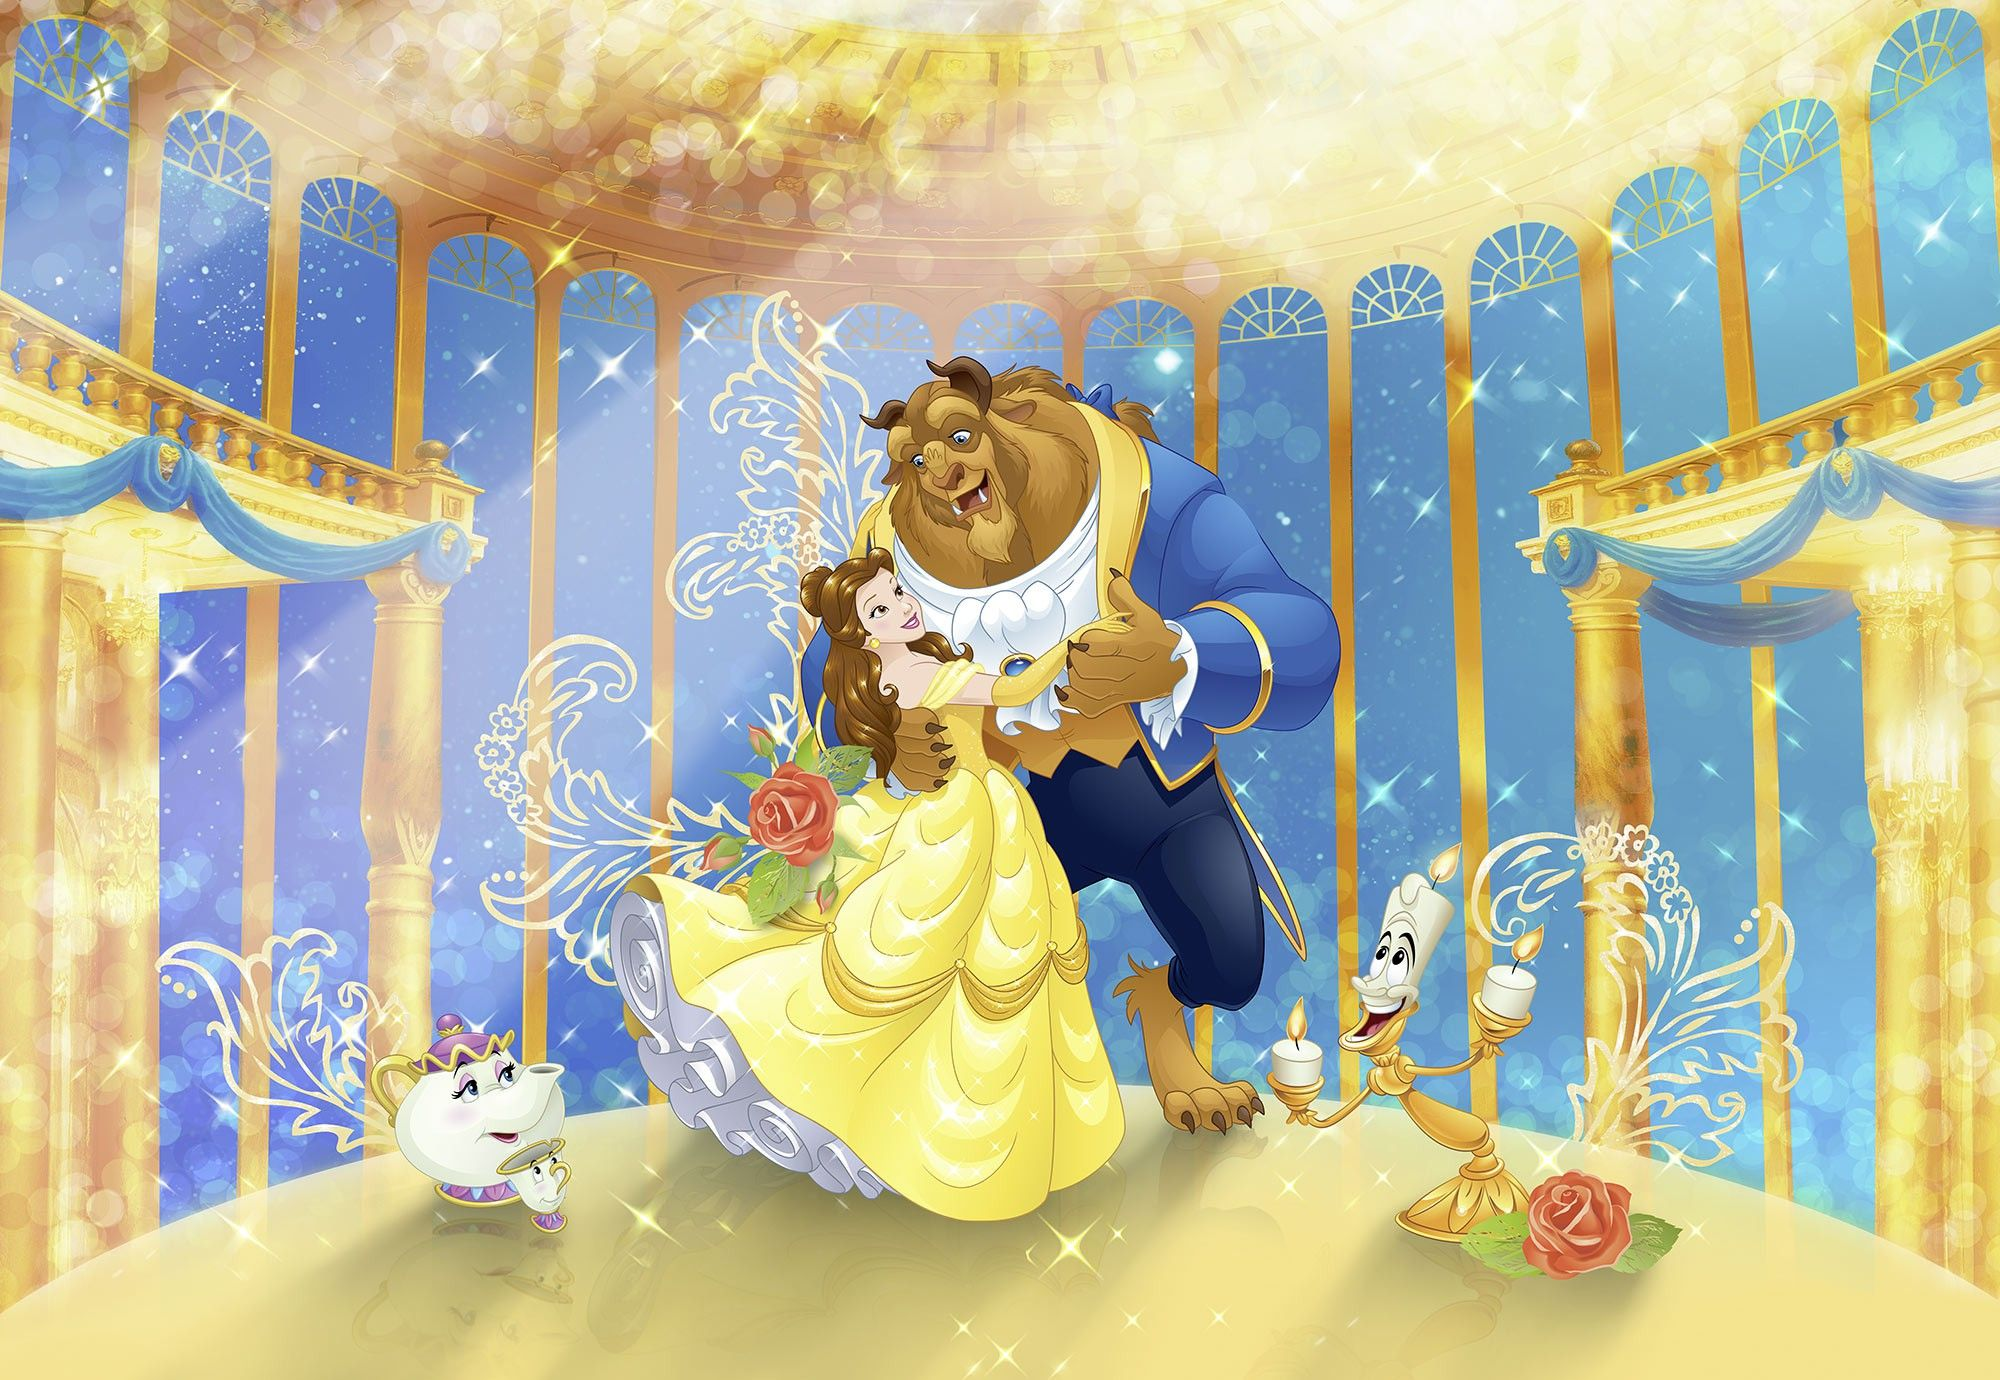 Giant Wall Mural Wallpaper Beauty And The Beast Disney